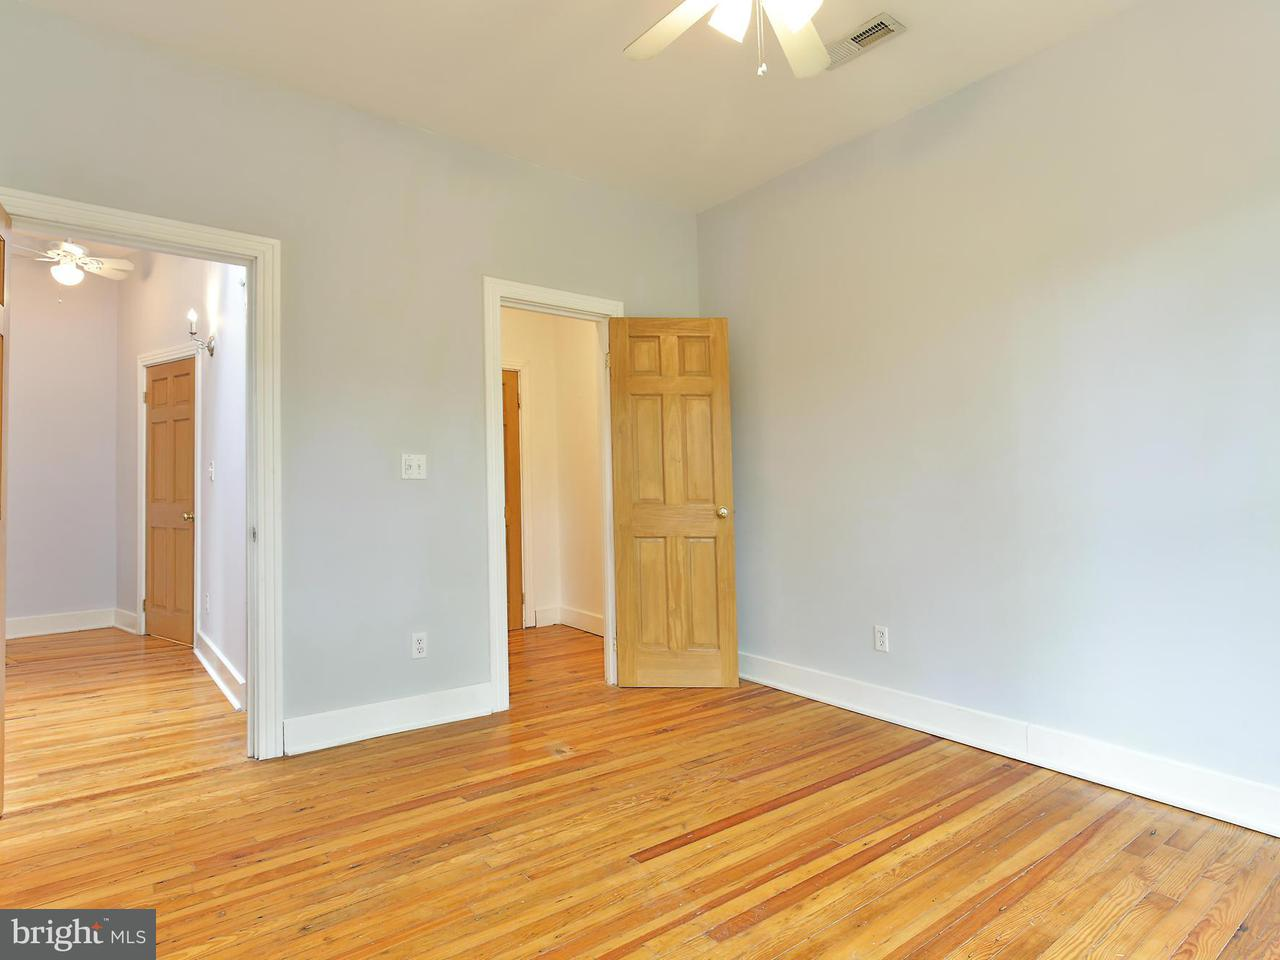 Additional photo for property listing at 1001 South Carolina Ave Se 1001 South Carolina Ave Se 华盛顿市, 哥伦比亚特区 20003 美国